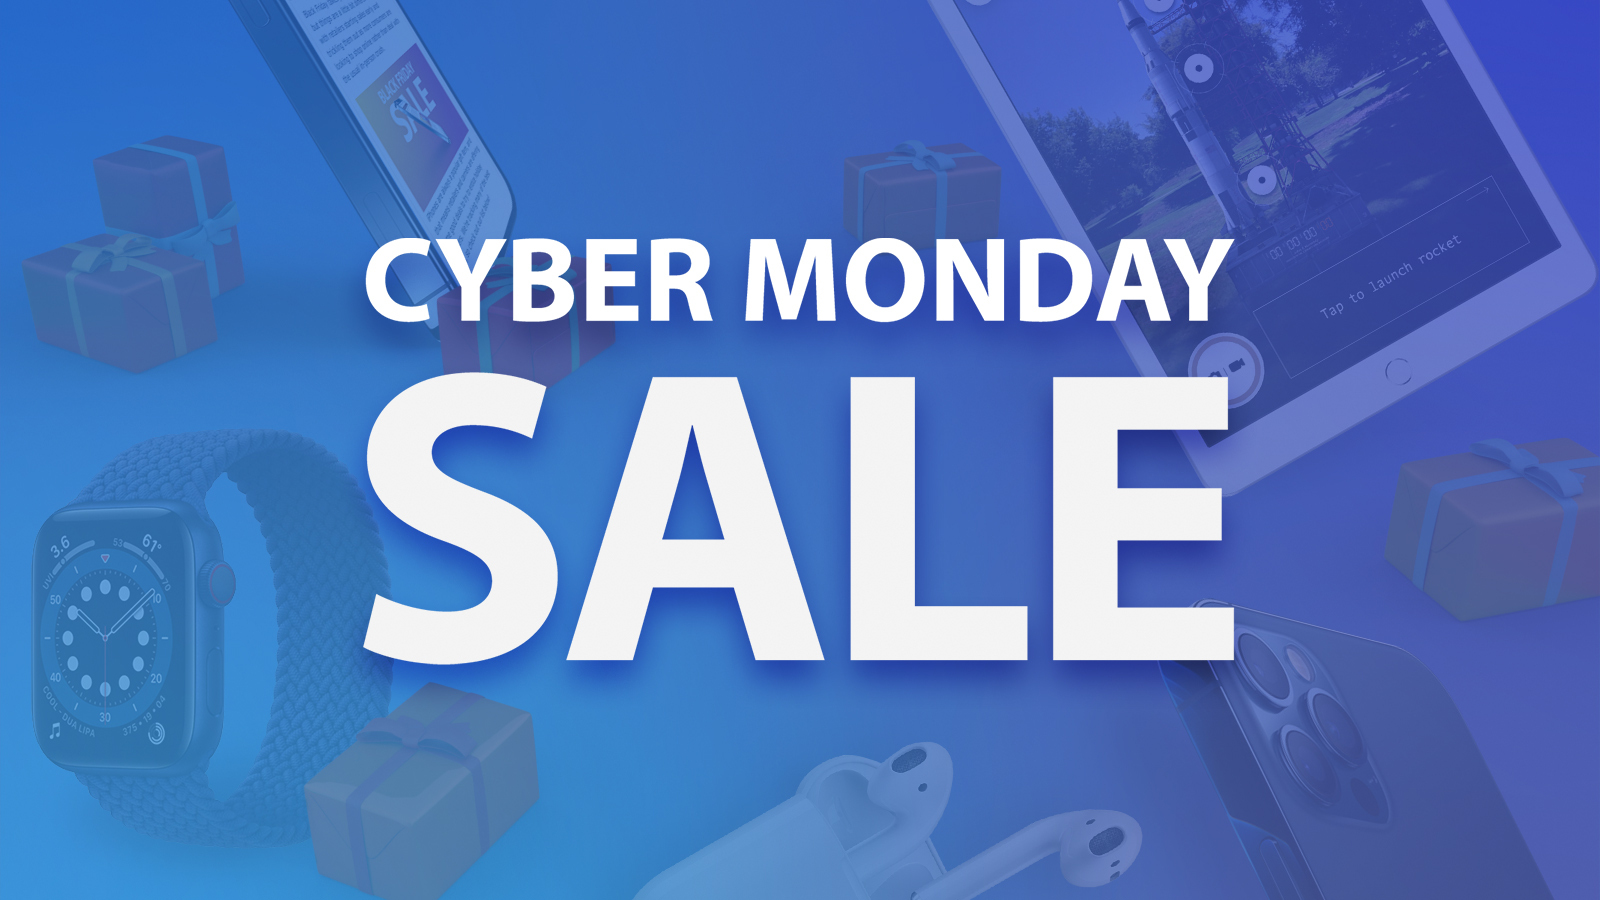 Apple Cyber Monday 2020: Discounts on iPads, Macs, AirPods, and More